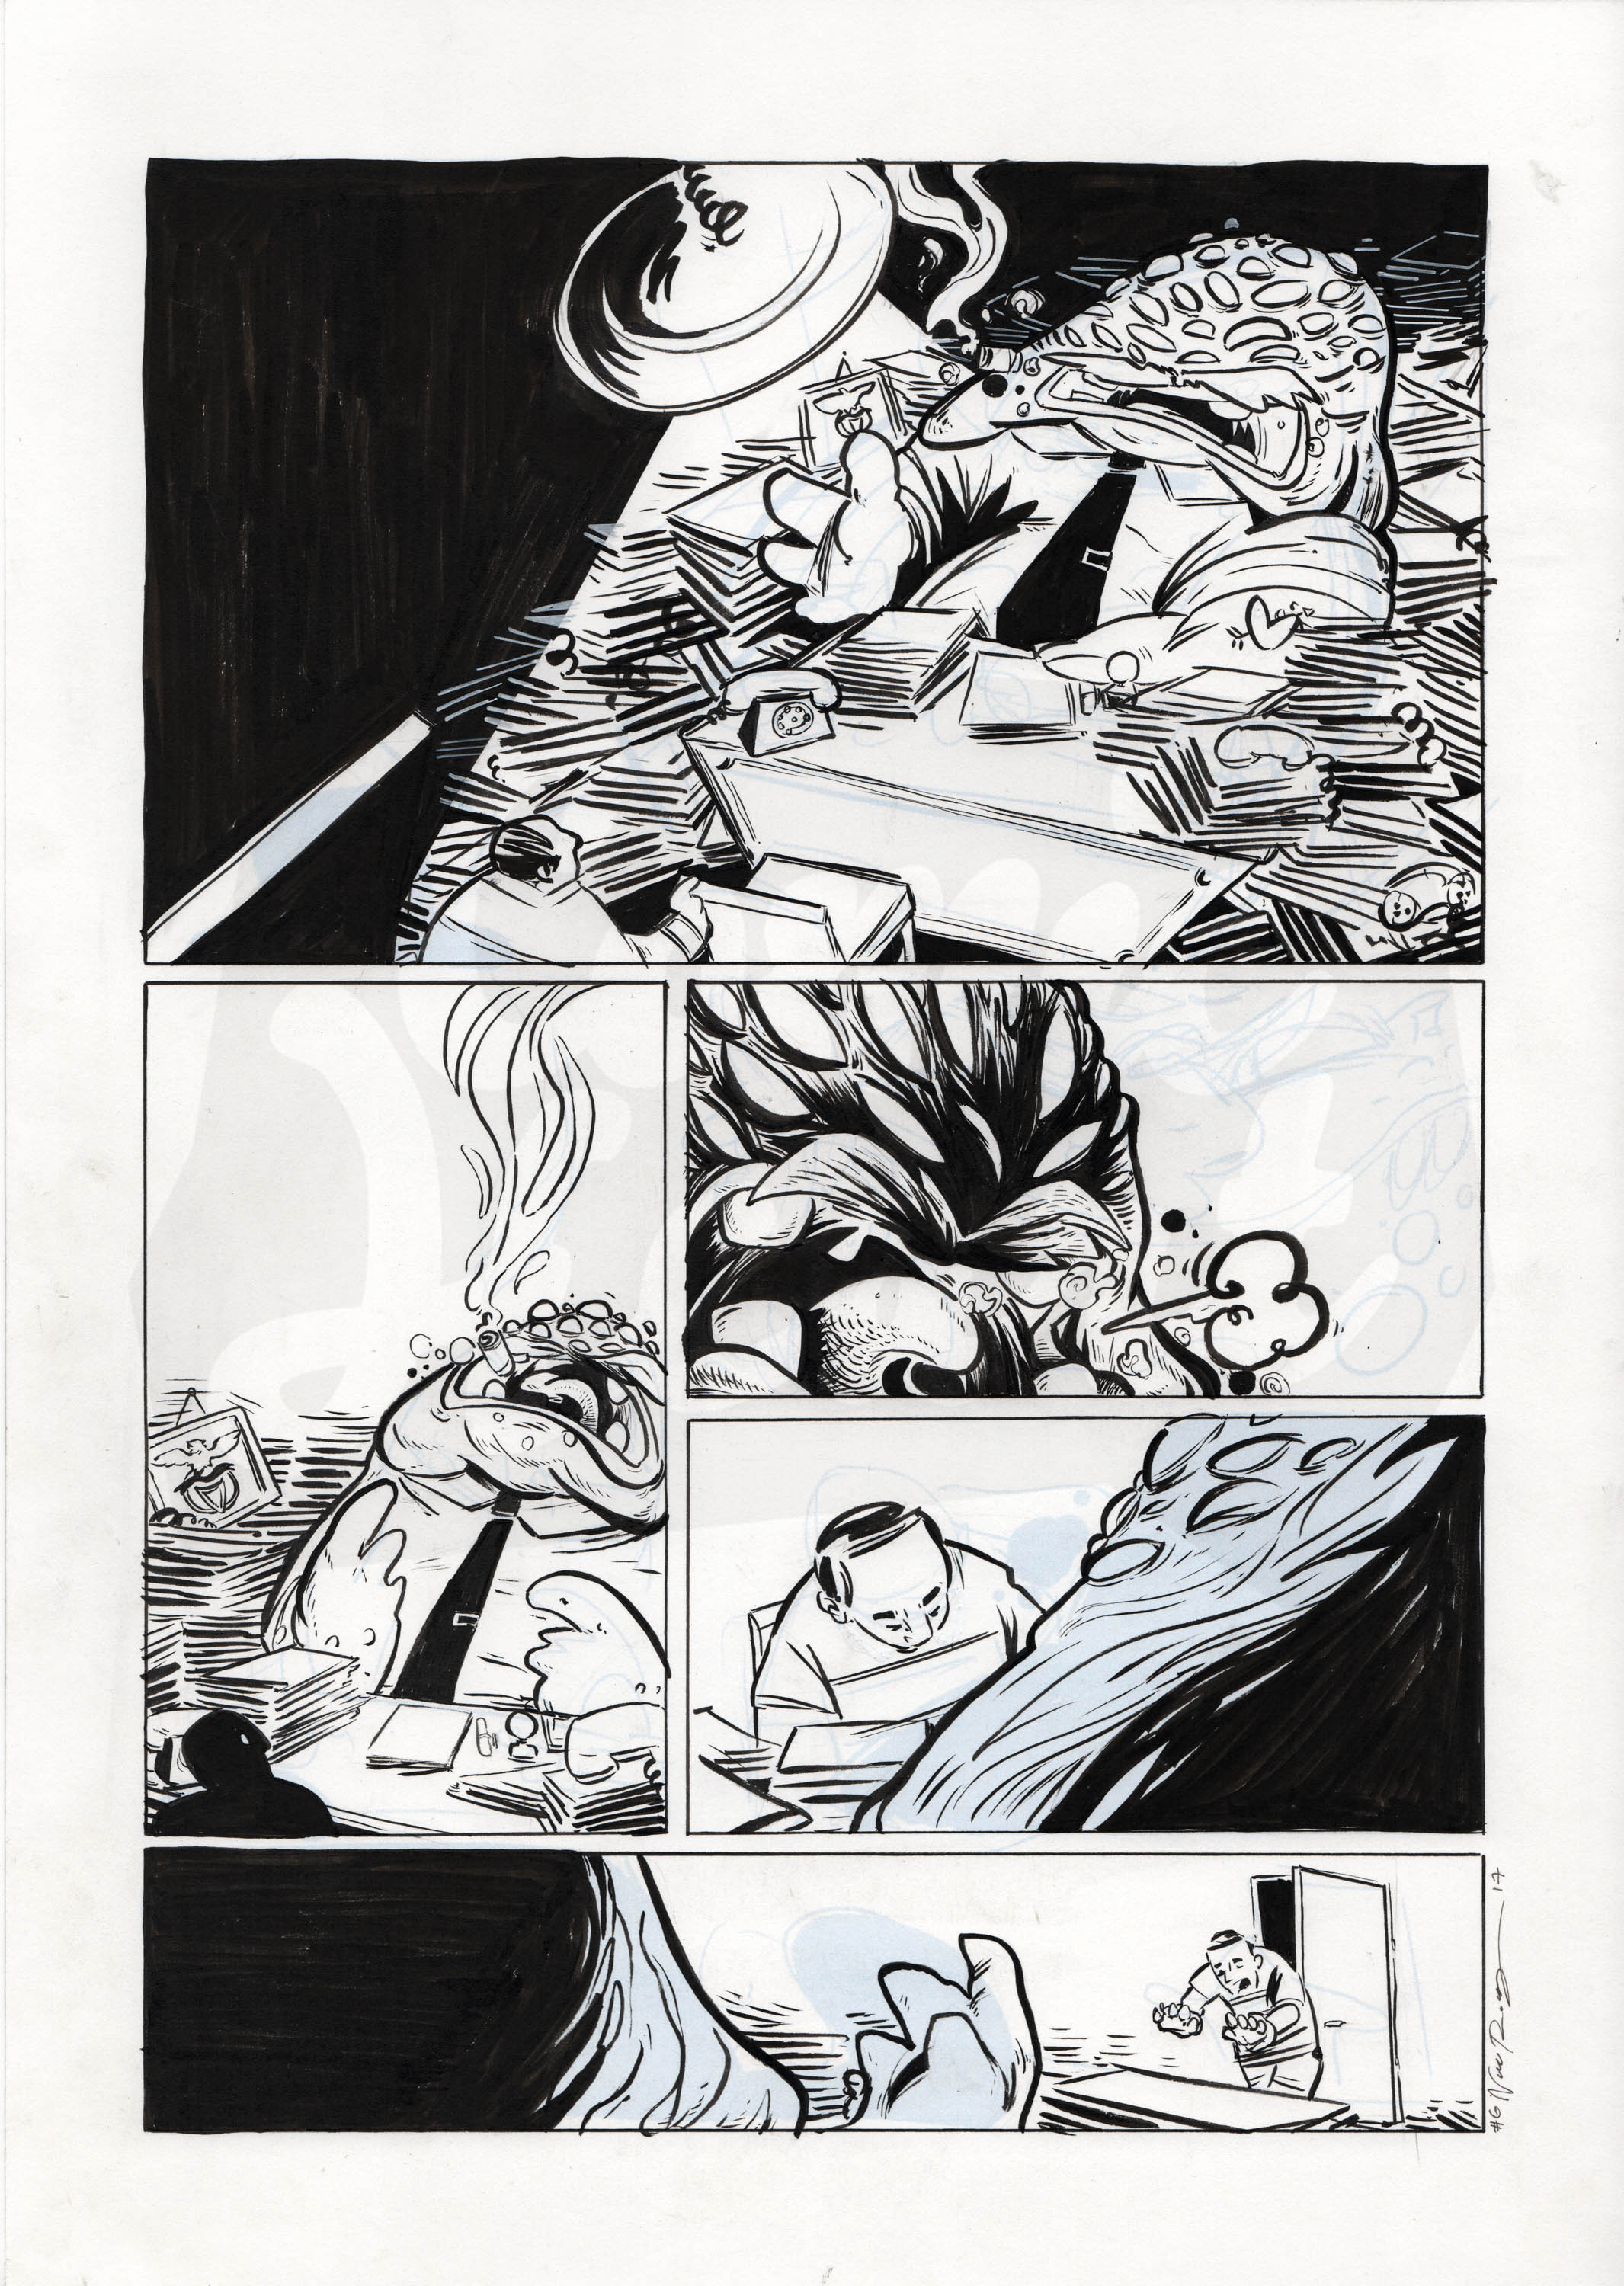 Monstros (Page 6)